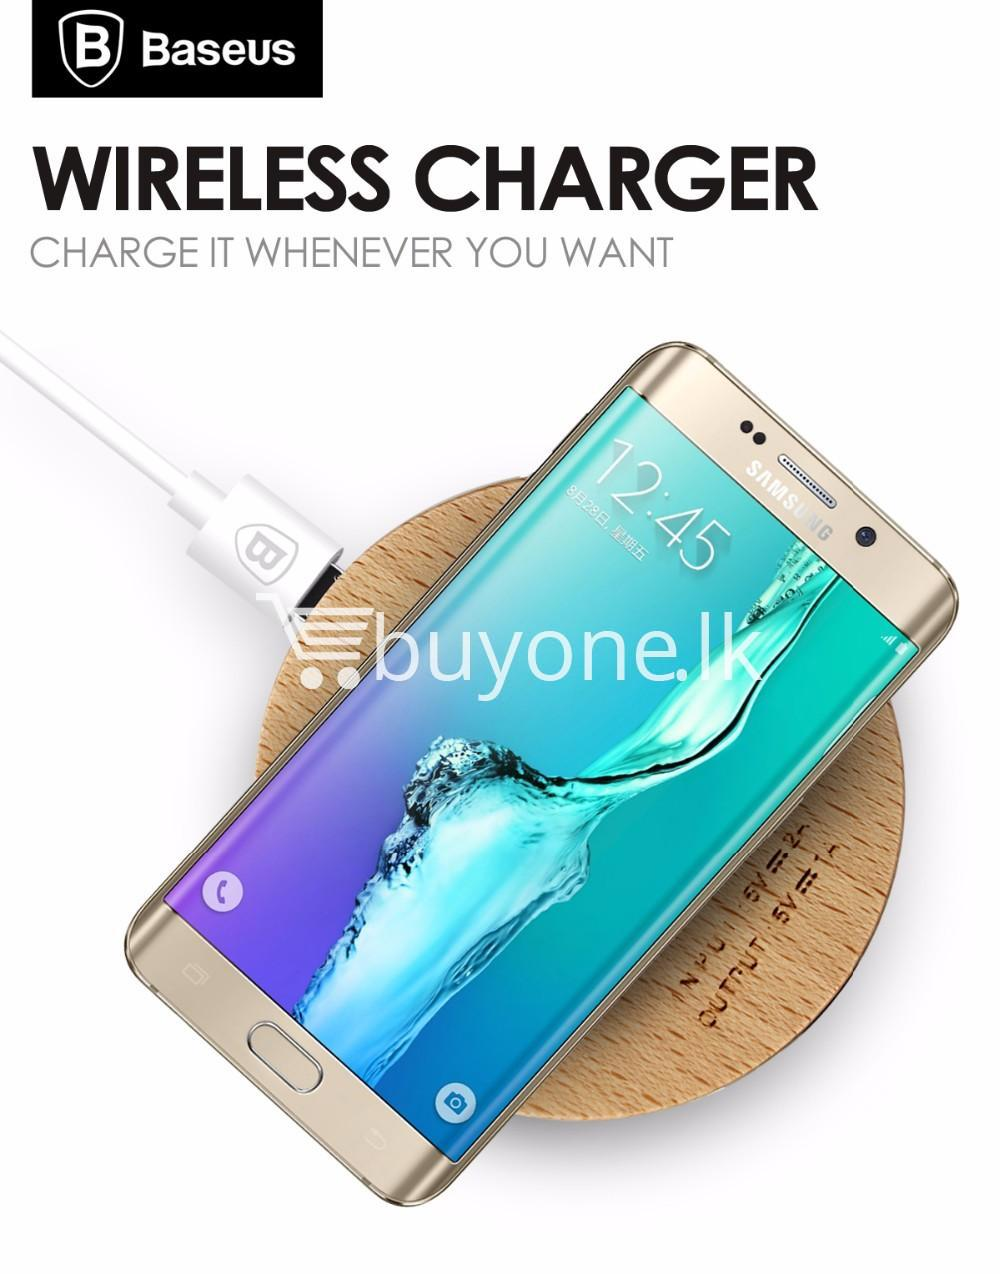 original baseus qi wireless charger for samsung iphone htc mi mobile phone accessories special best offer buy one lk sri lanka 73735 - Original Baseus Qi Wireless Charger for Samsung iPhone HTC Mi